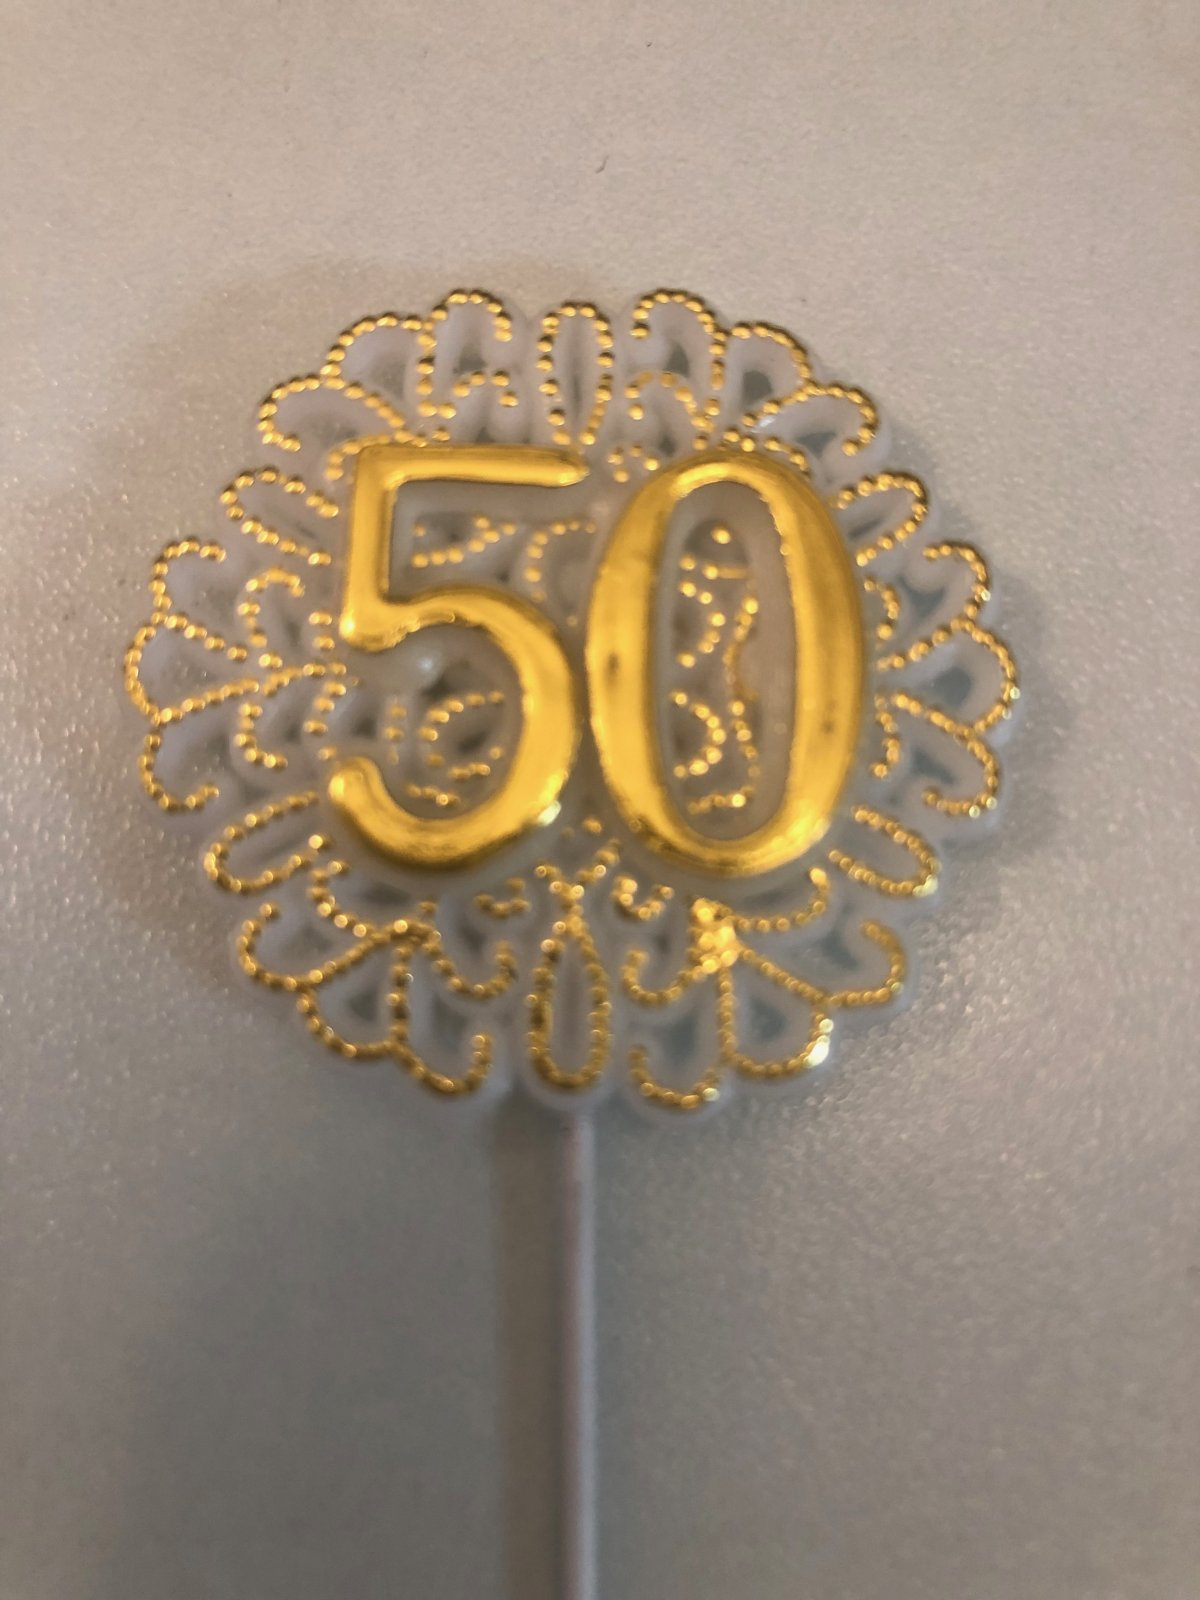 50th Anniversary Round Plaque Pick Cake Topper  1 1/2